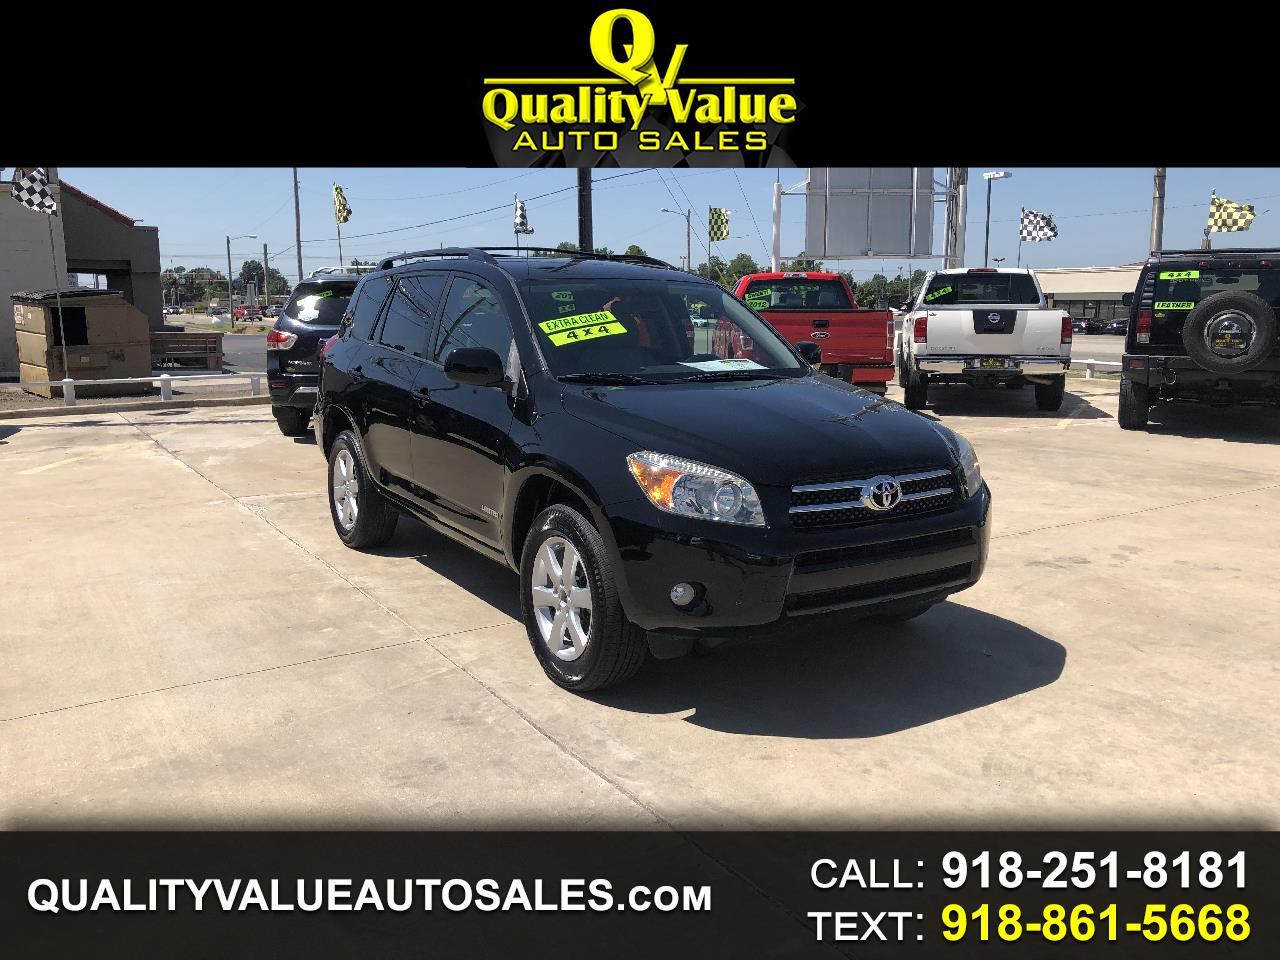 2007 Toyota RAV4 Limited I4 4WD with 3rd Row